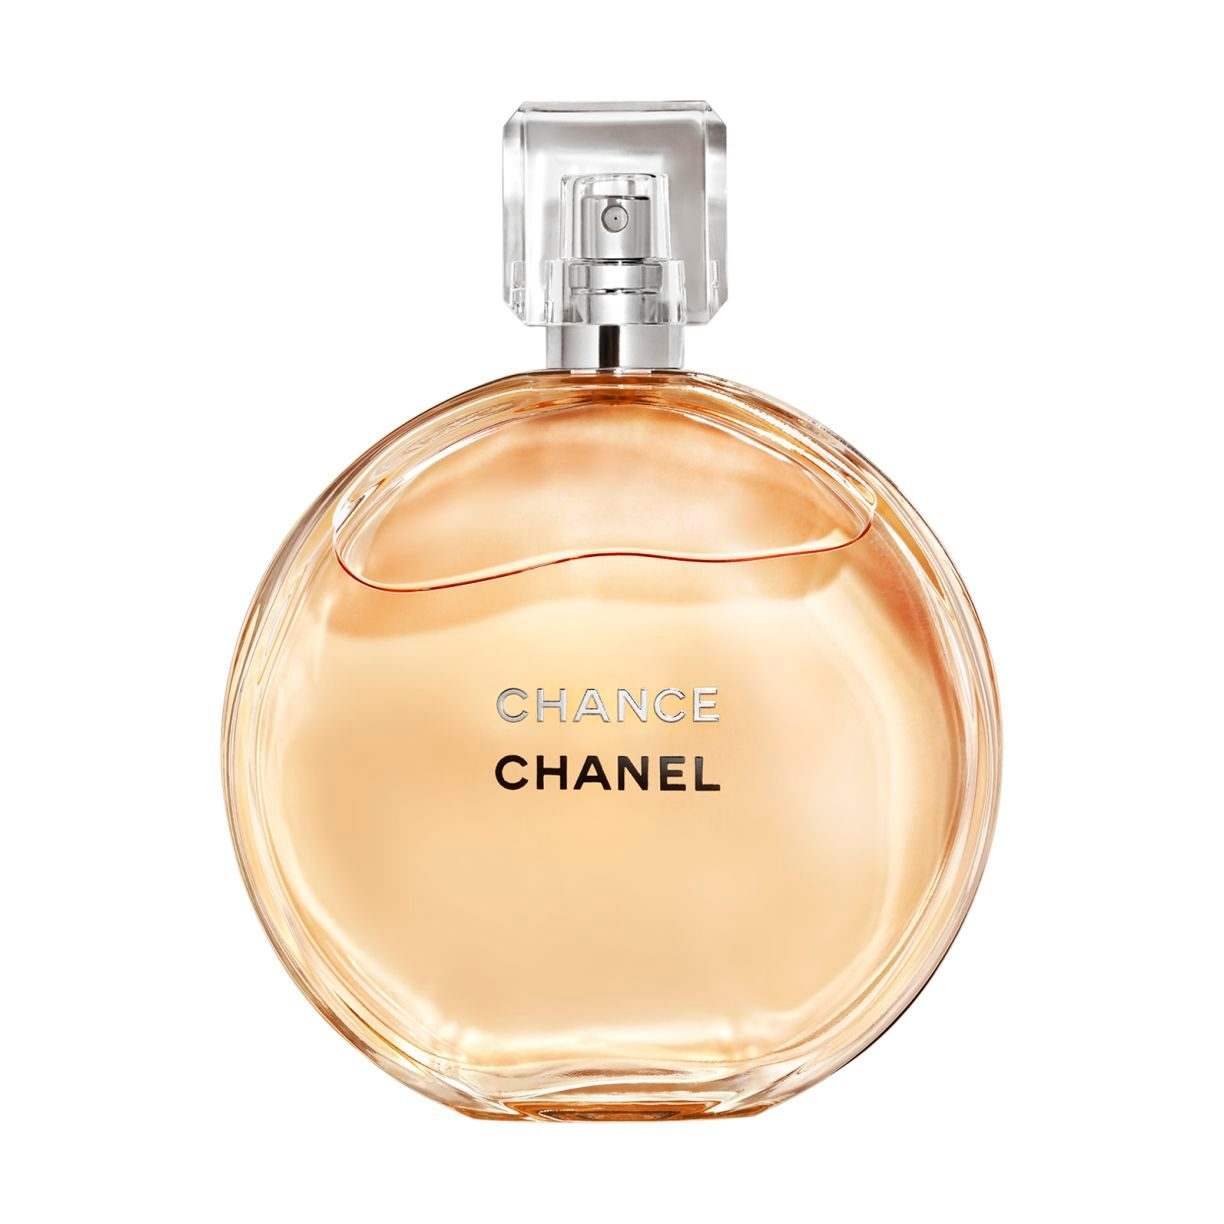 CHANCE EAU DE TOILETTE VERSTUIVER 100ml